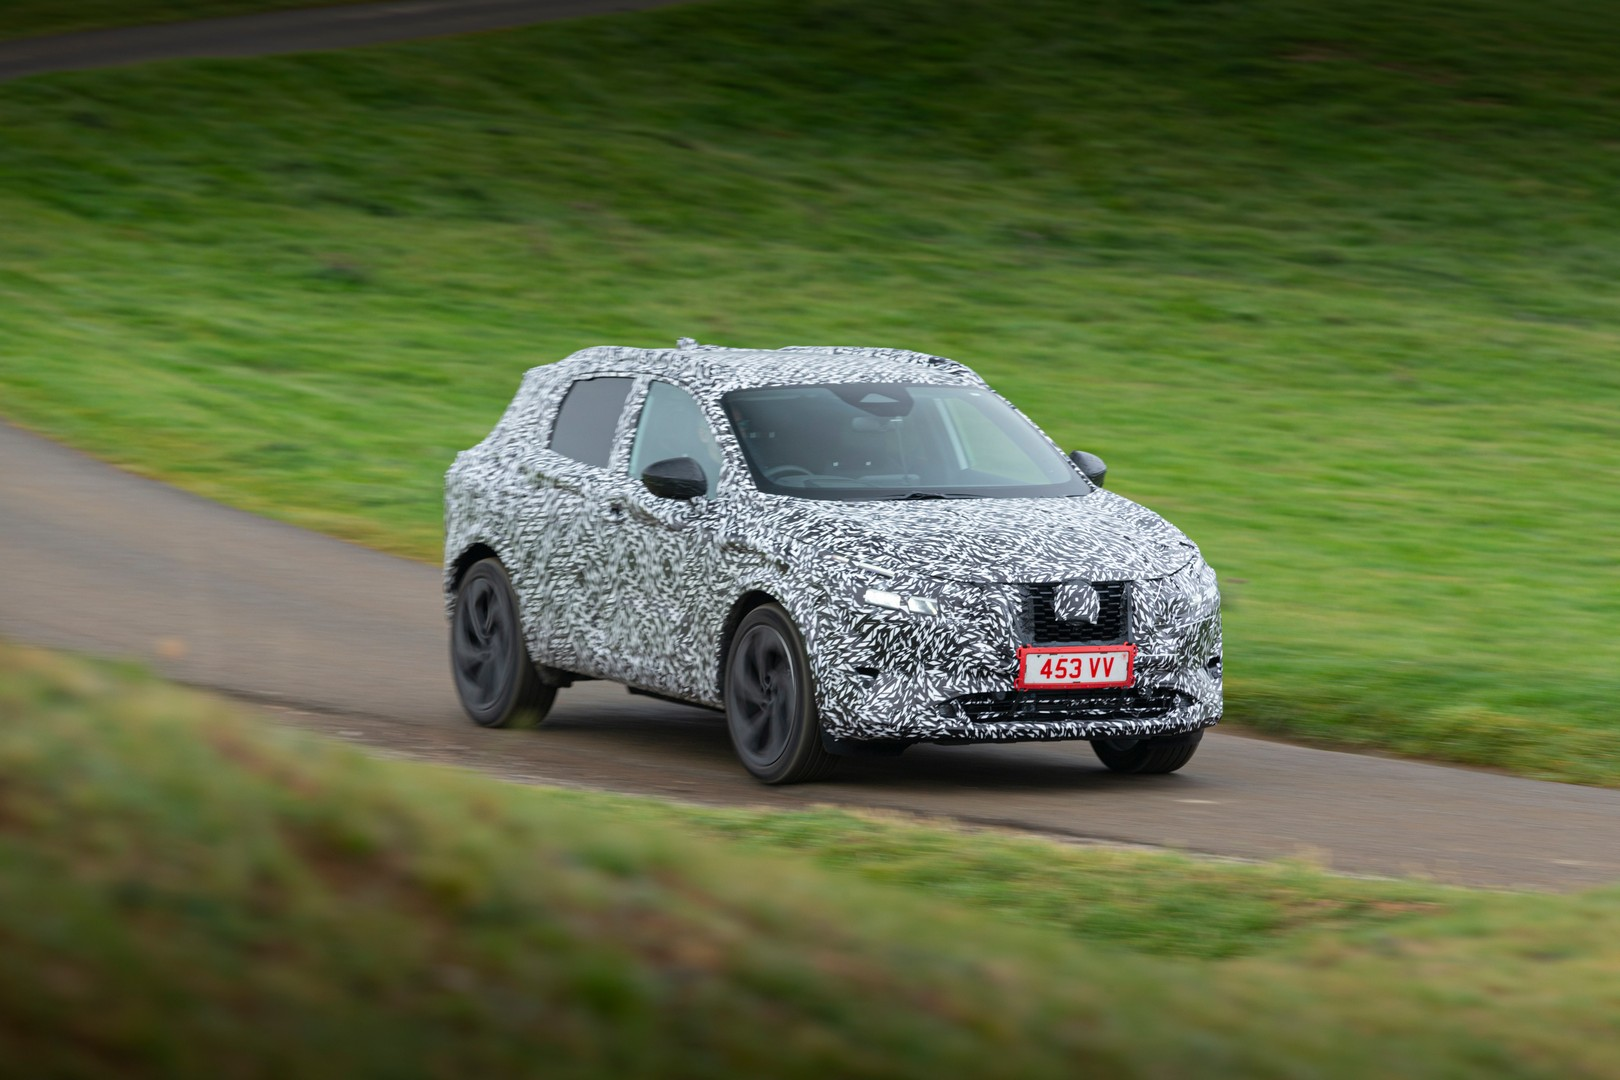 Nissan Qashqai teased, will be offered with petrol generator hybrid system